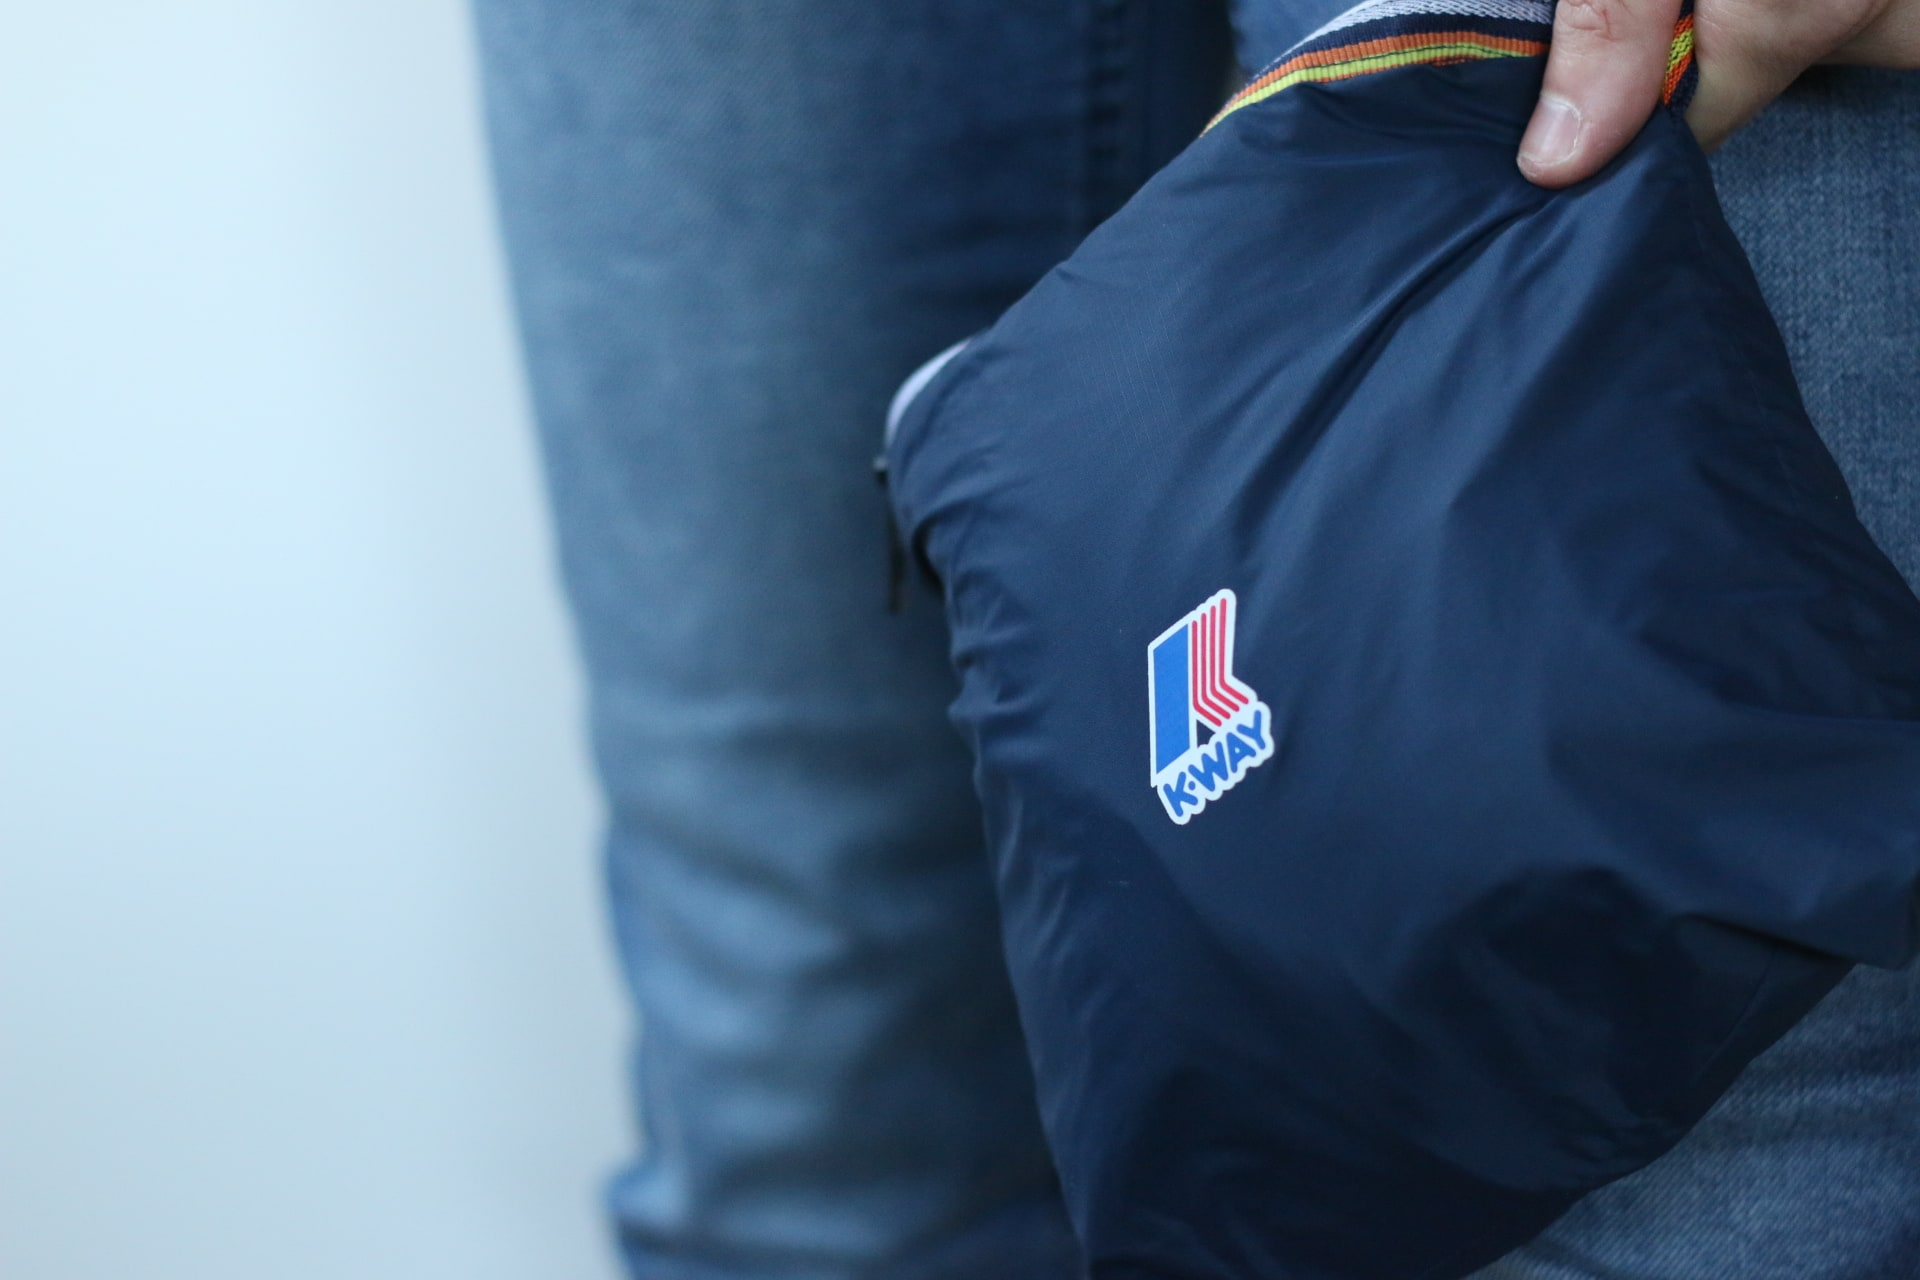 The BEST jacket for work, life and play!